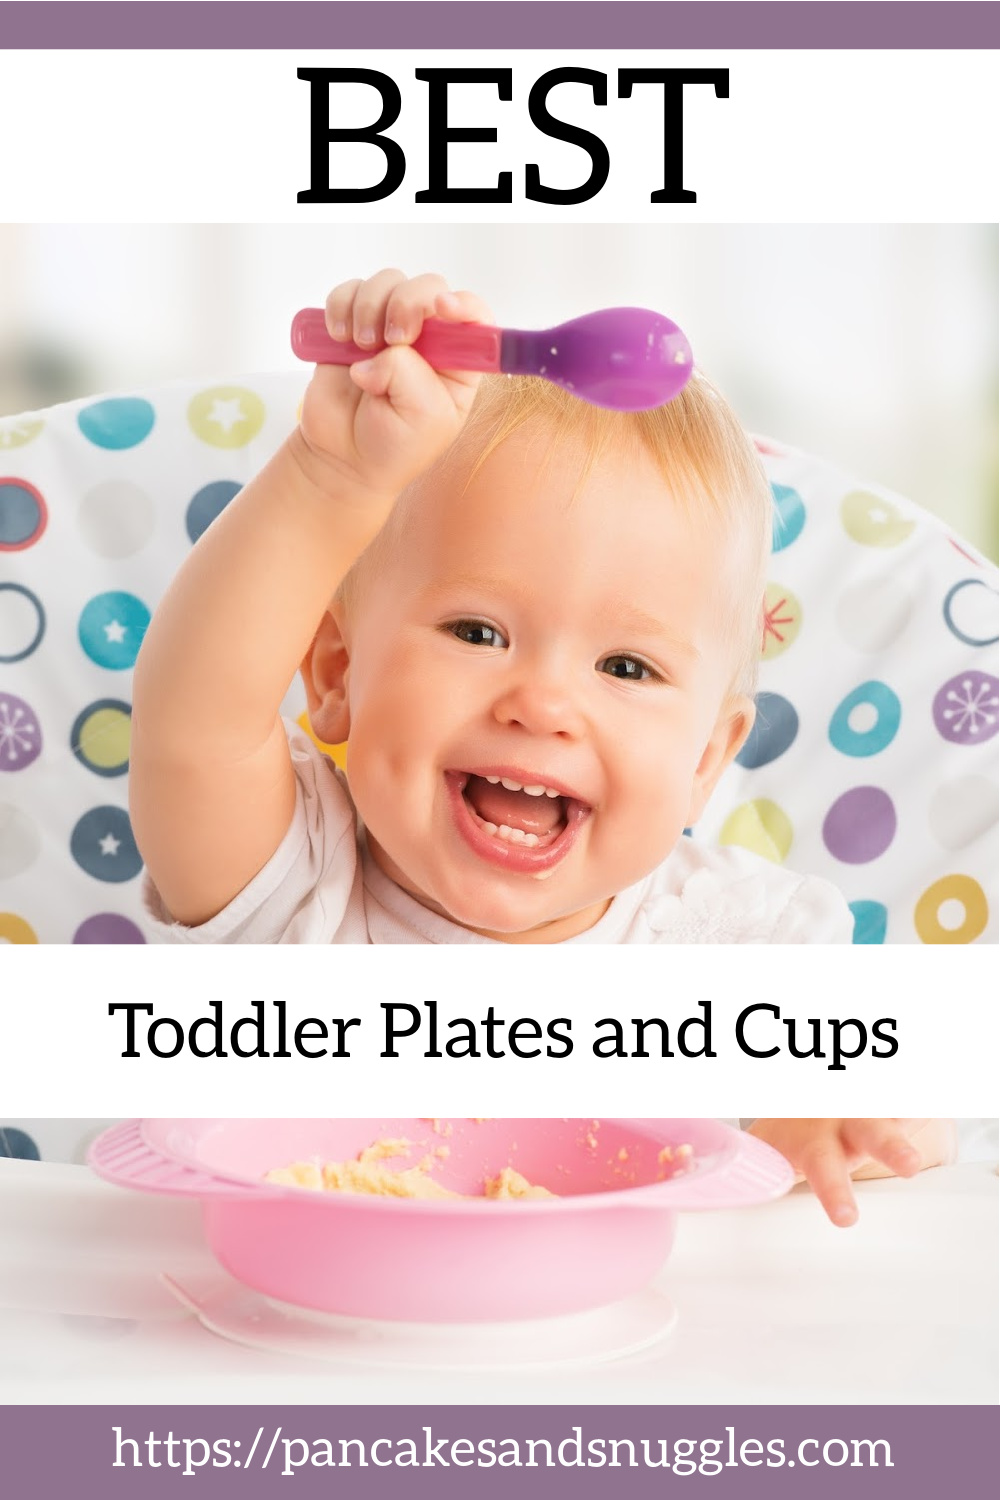 Best Toddler Plates and Cups